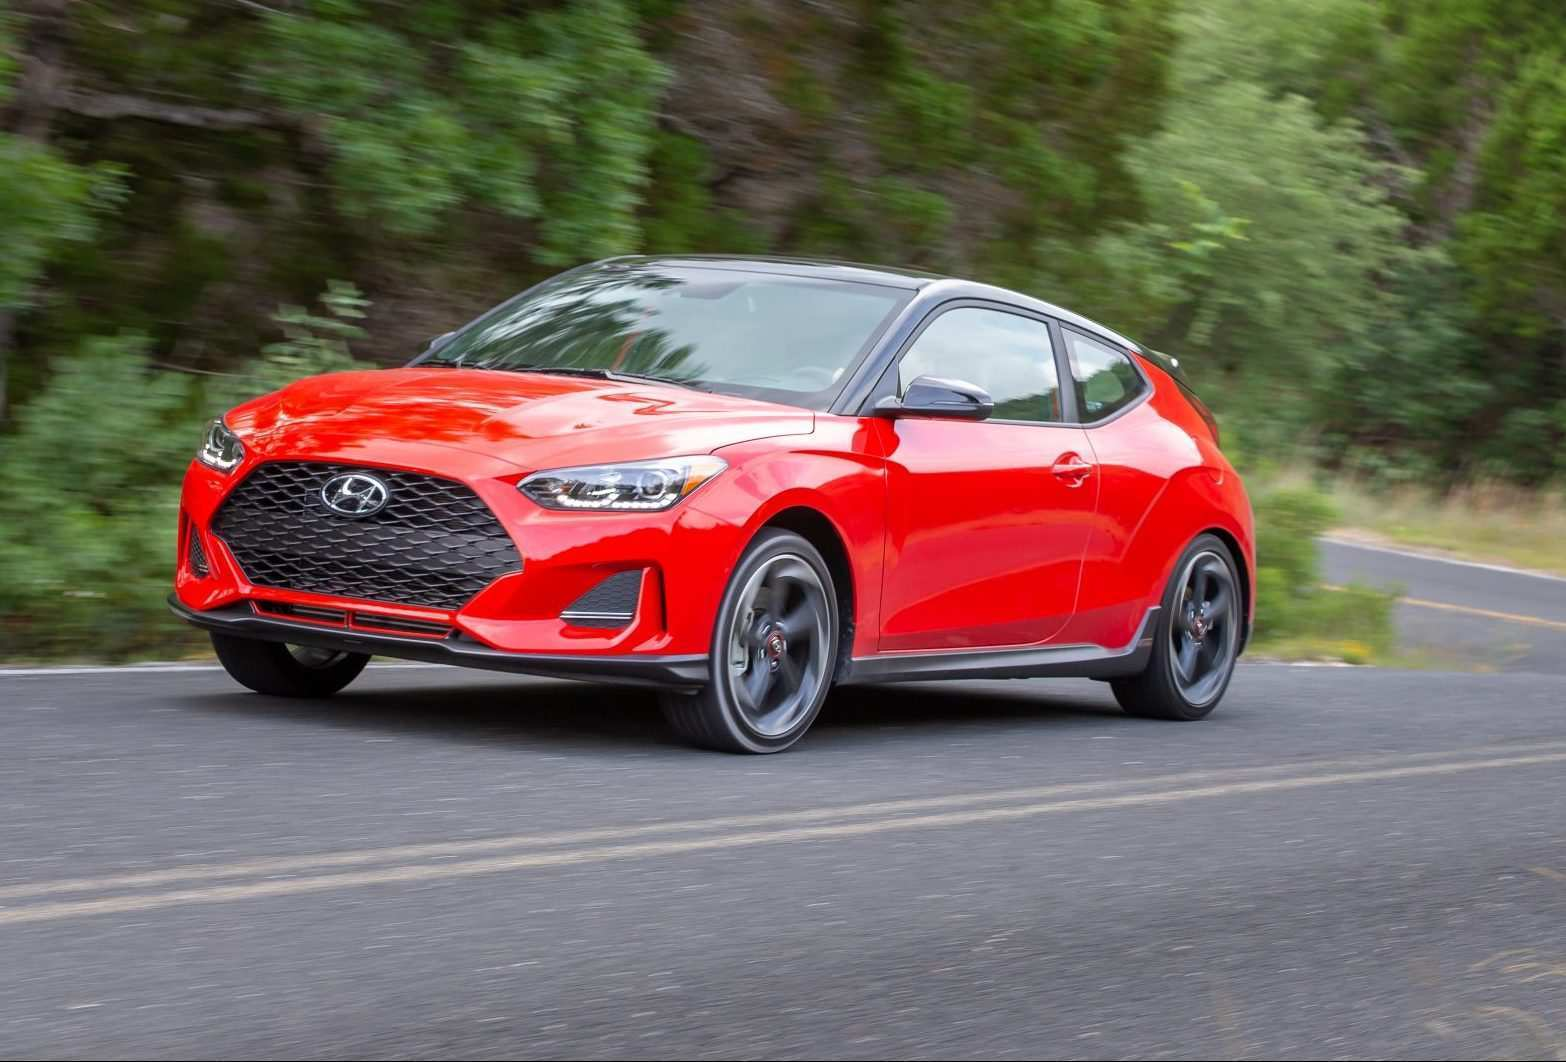 71 Great 2019 Hyundai Veloster Turbo Review Configurations with 2019 Hyundai Veloster Turbo Review